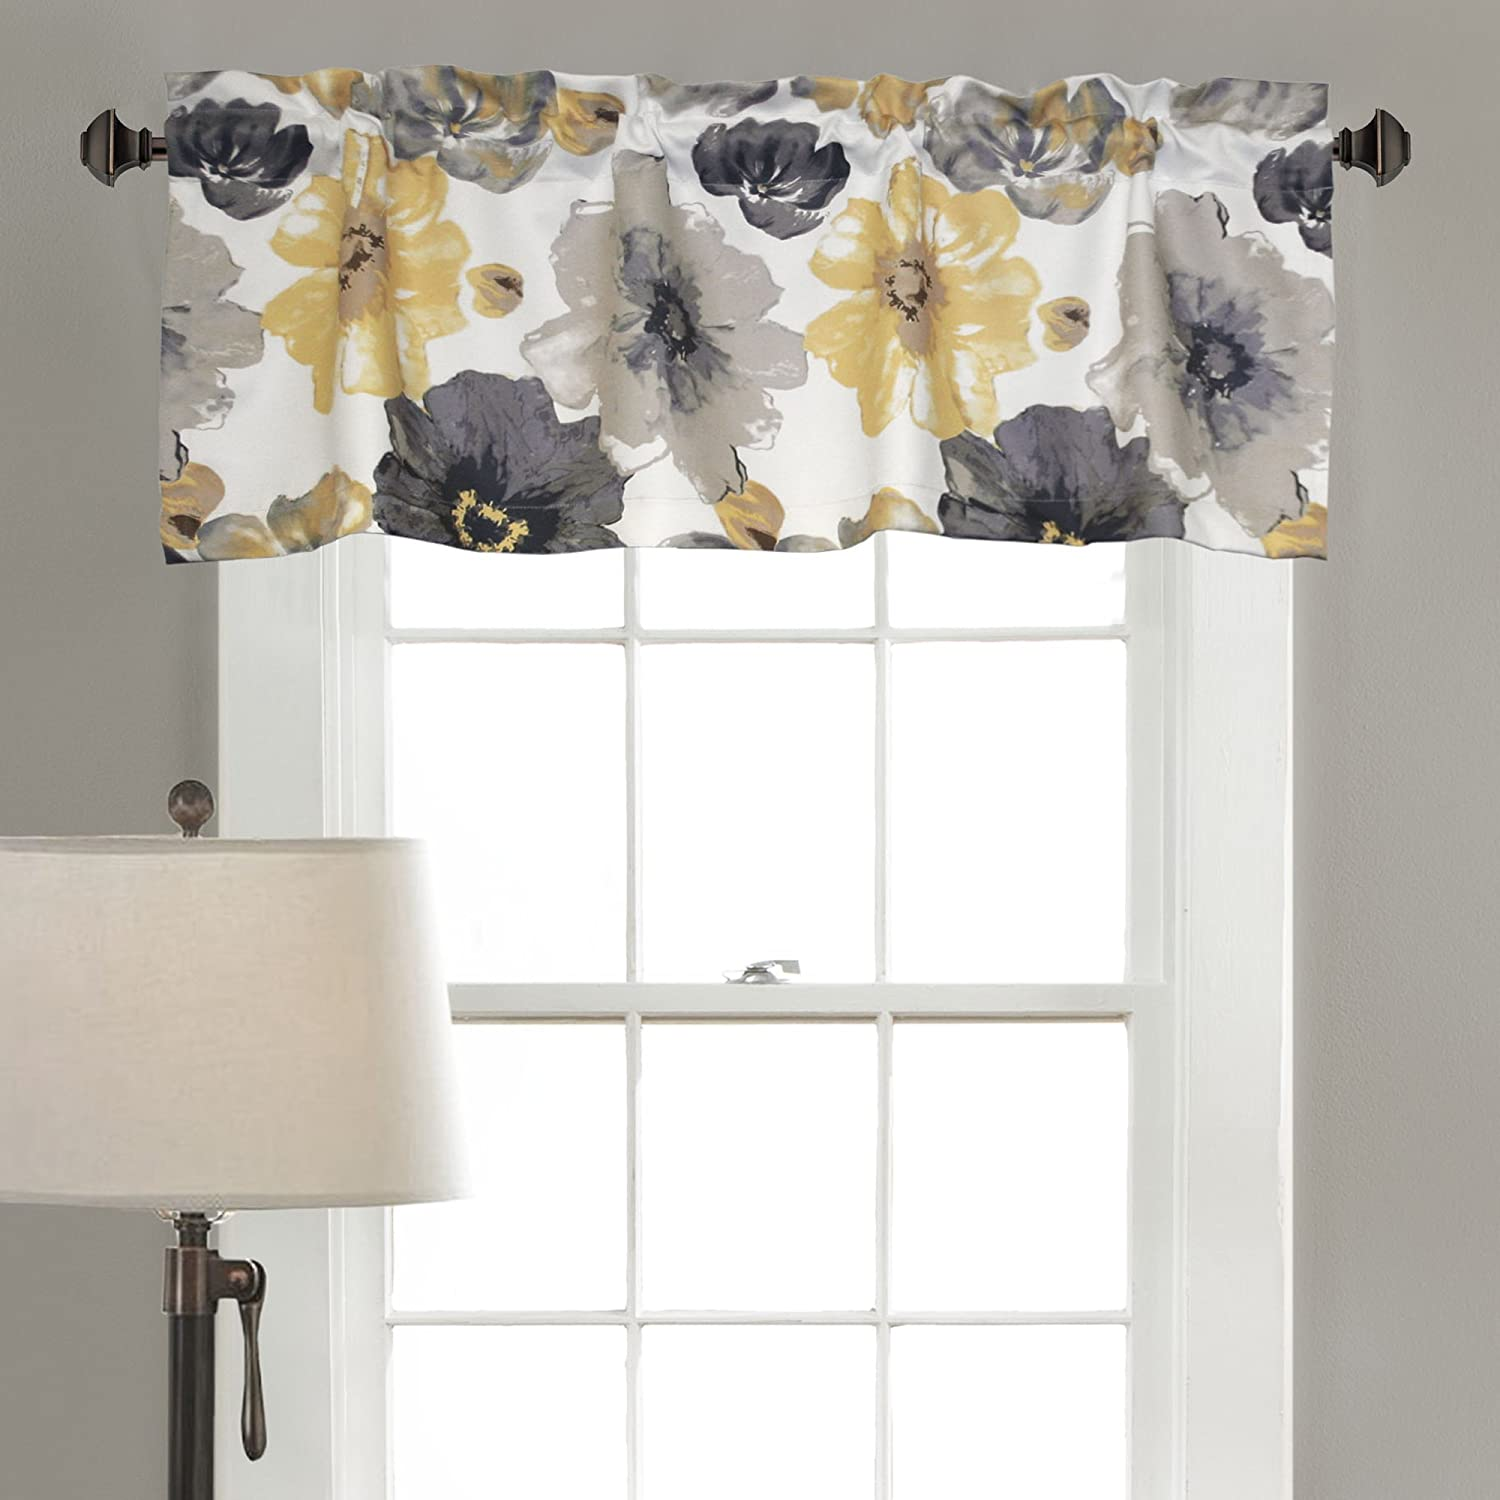 Room Darkening Window Valance Sale – Ease Bedding with Style